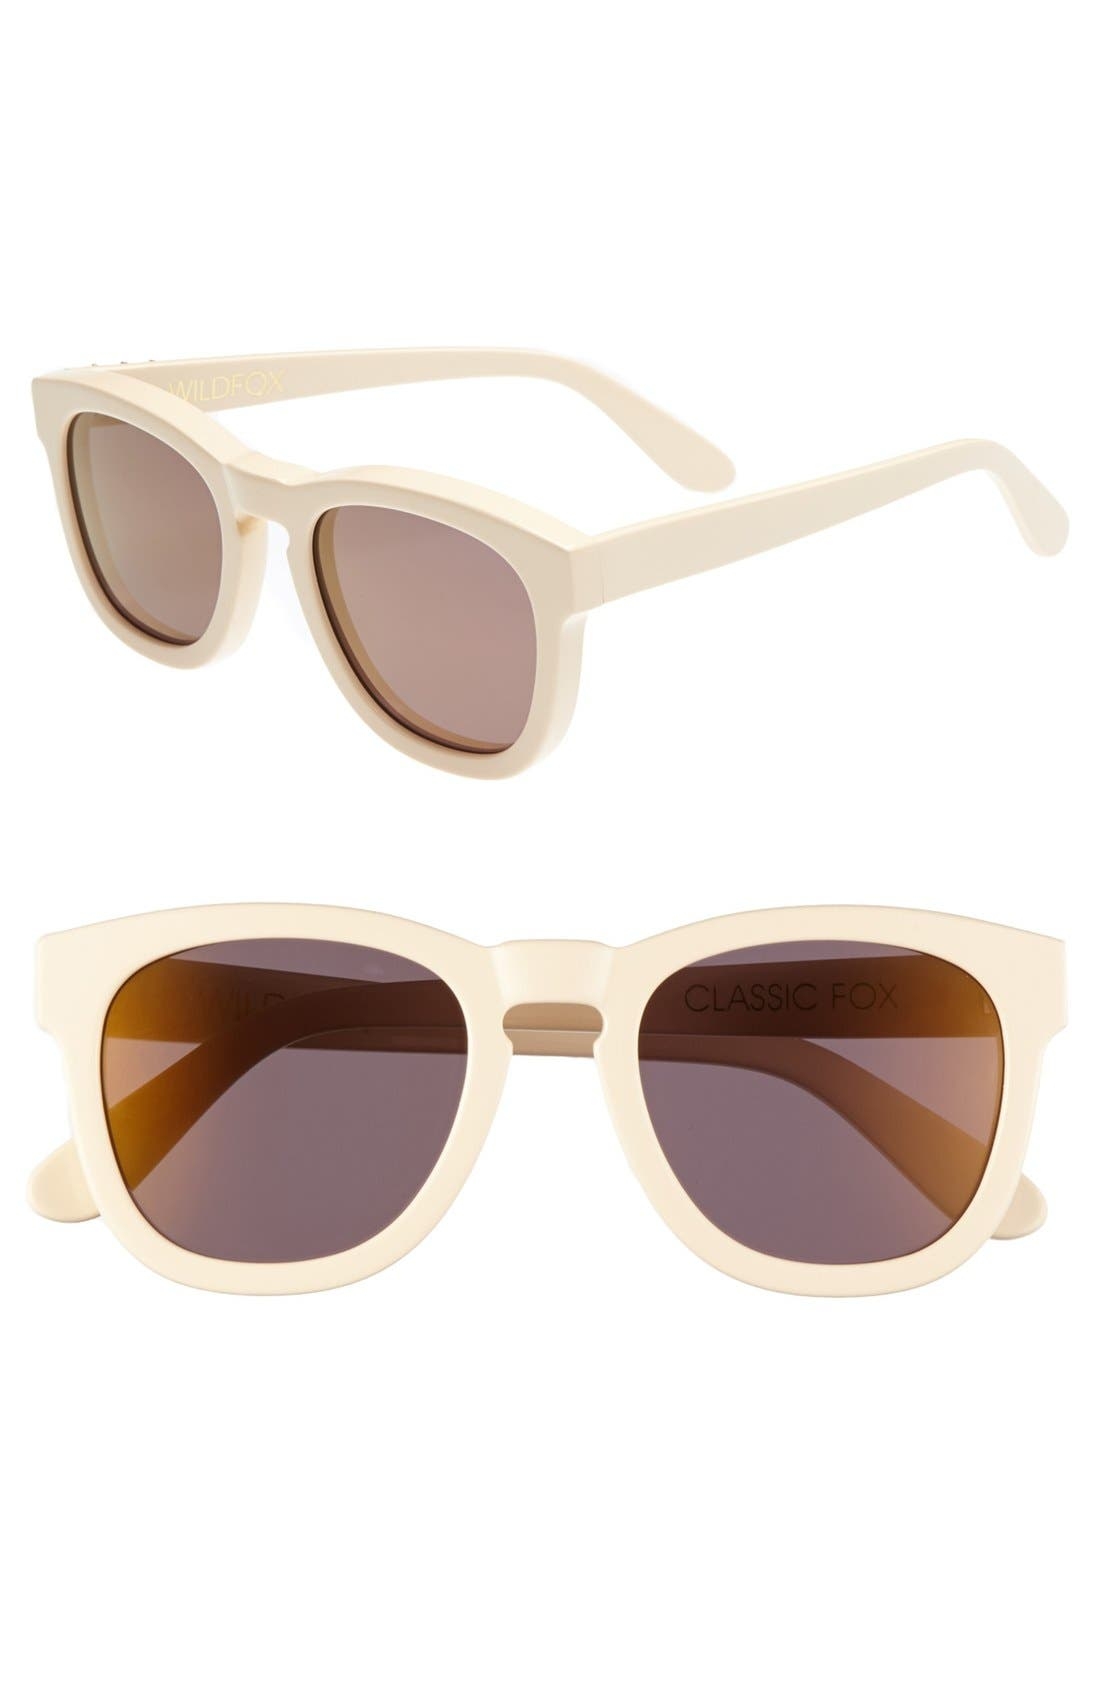 WILDFOX Classic Fox - Deluxe 52mm Sunglasses